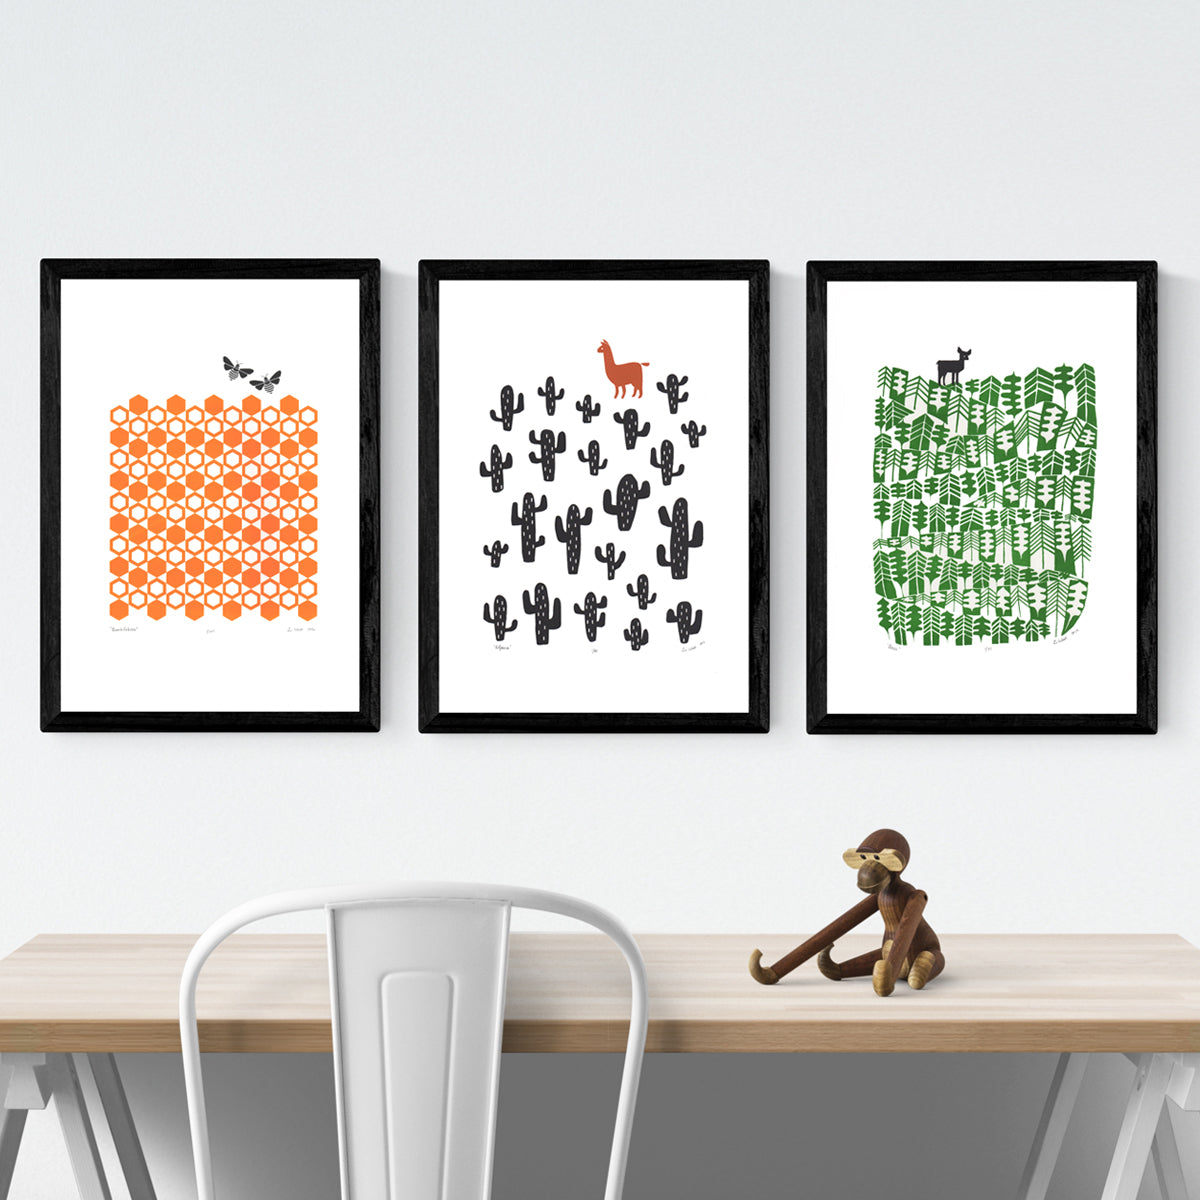 Buy 2 get 1 FREE Print Bundle (FRAMED) – Lu West